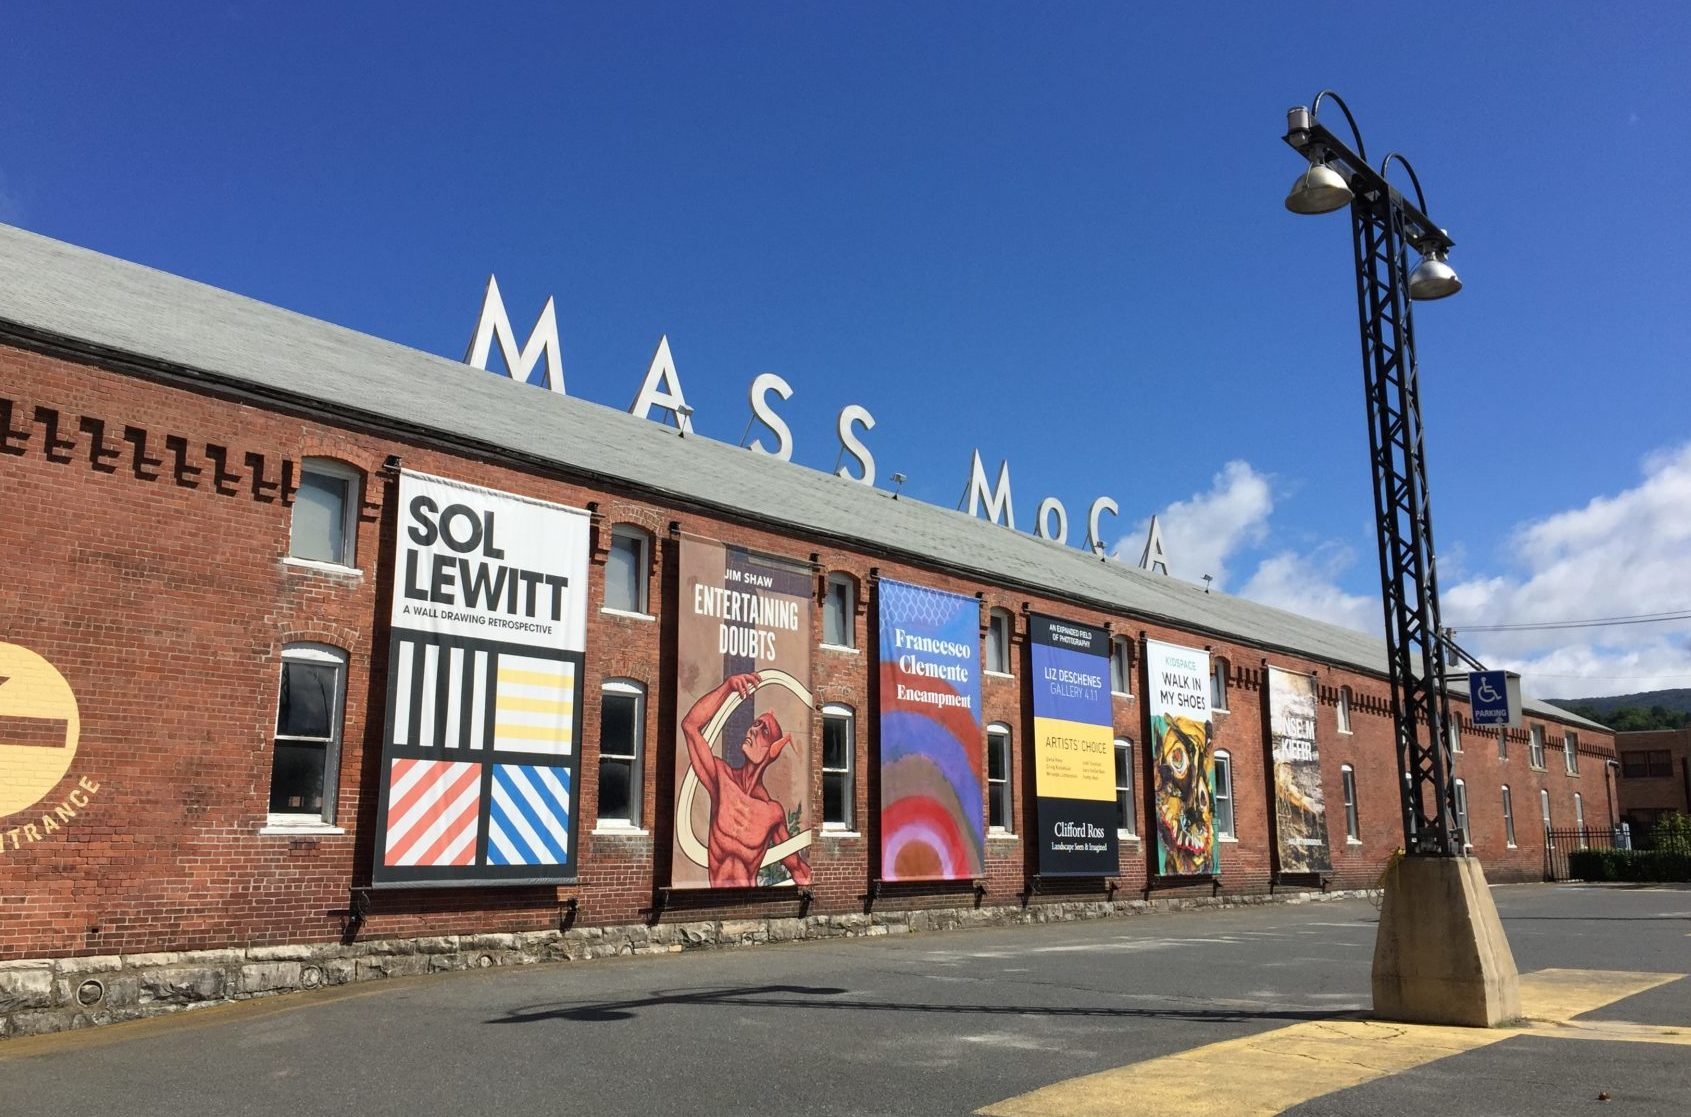 MASS MoCA opened 20 years ago in the Western Mass. city of North Adams. (Beth J. Harpaz/AP)